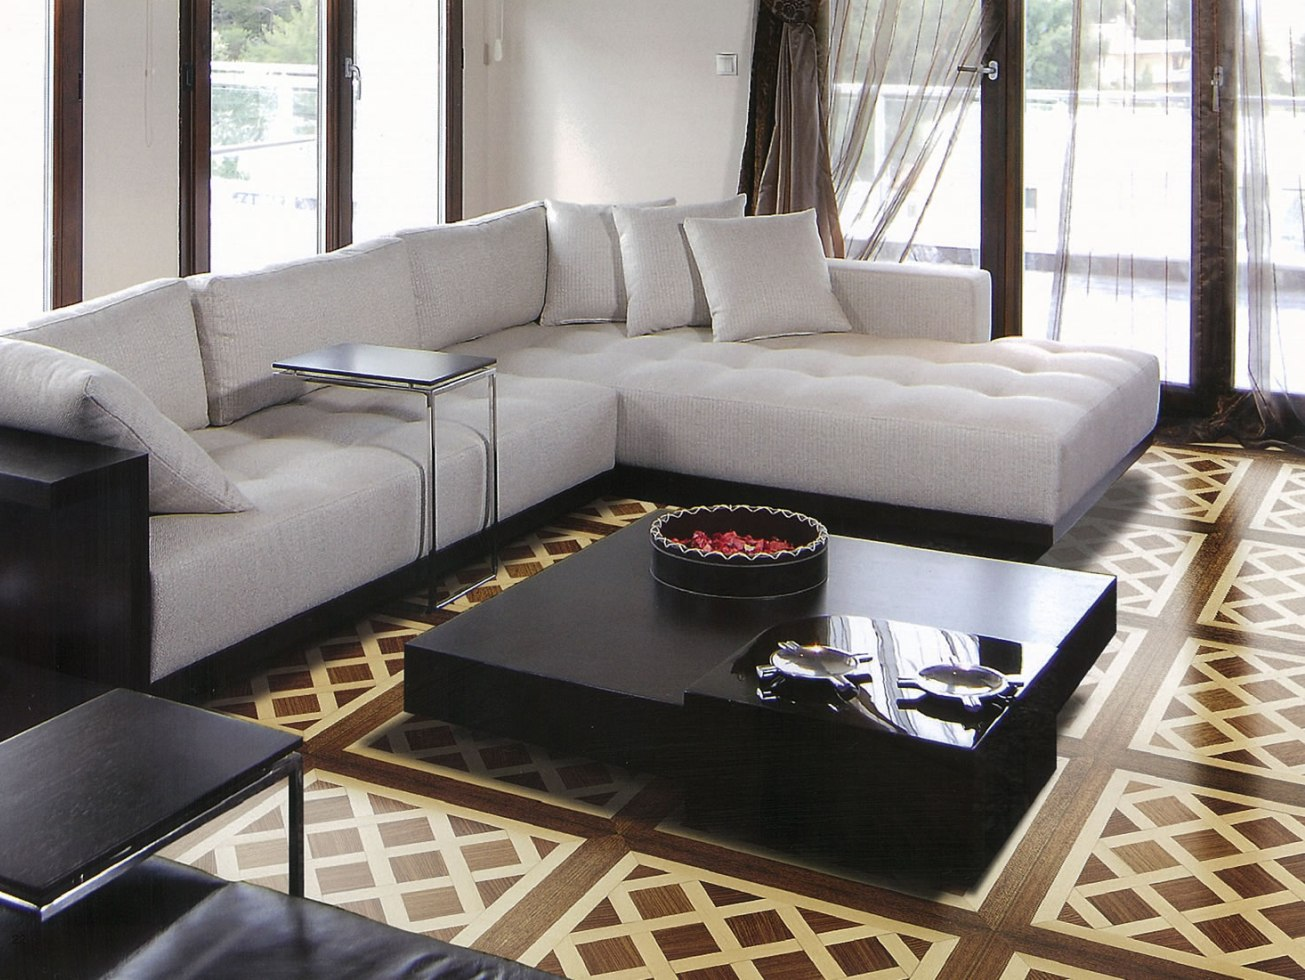 Sofa Set Design Ideas Best Design Home February 2013